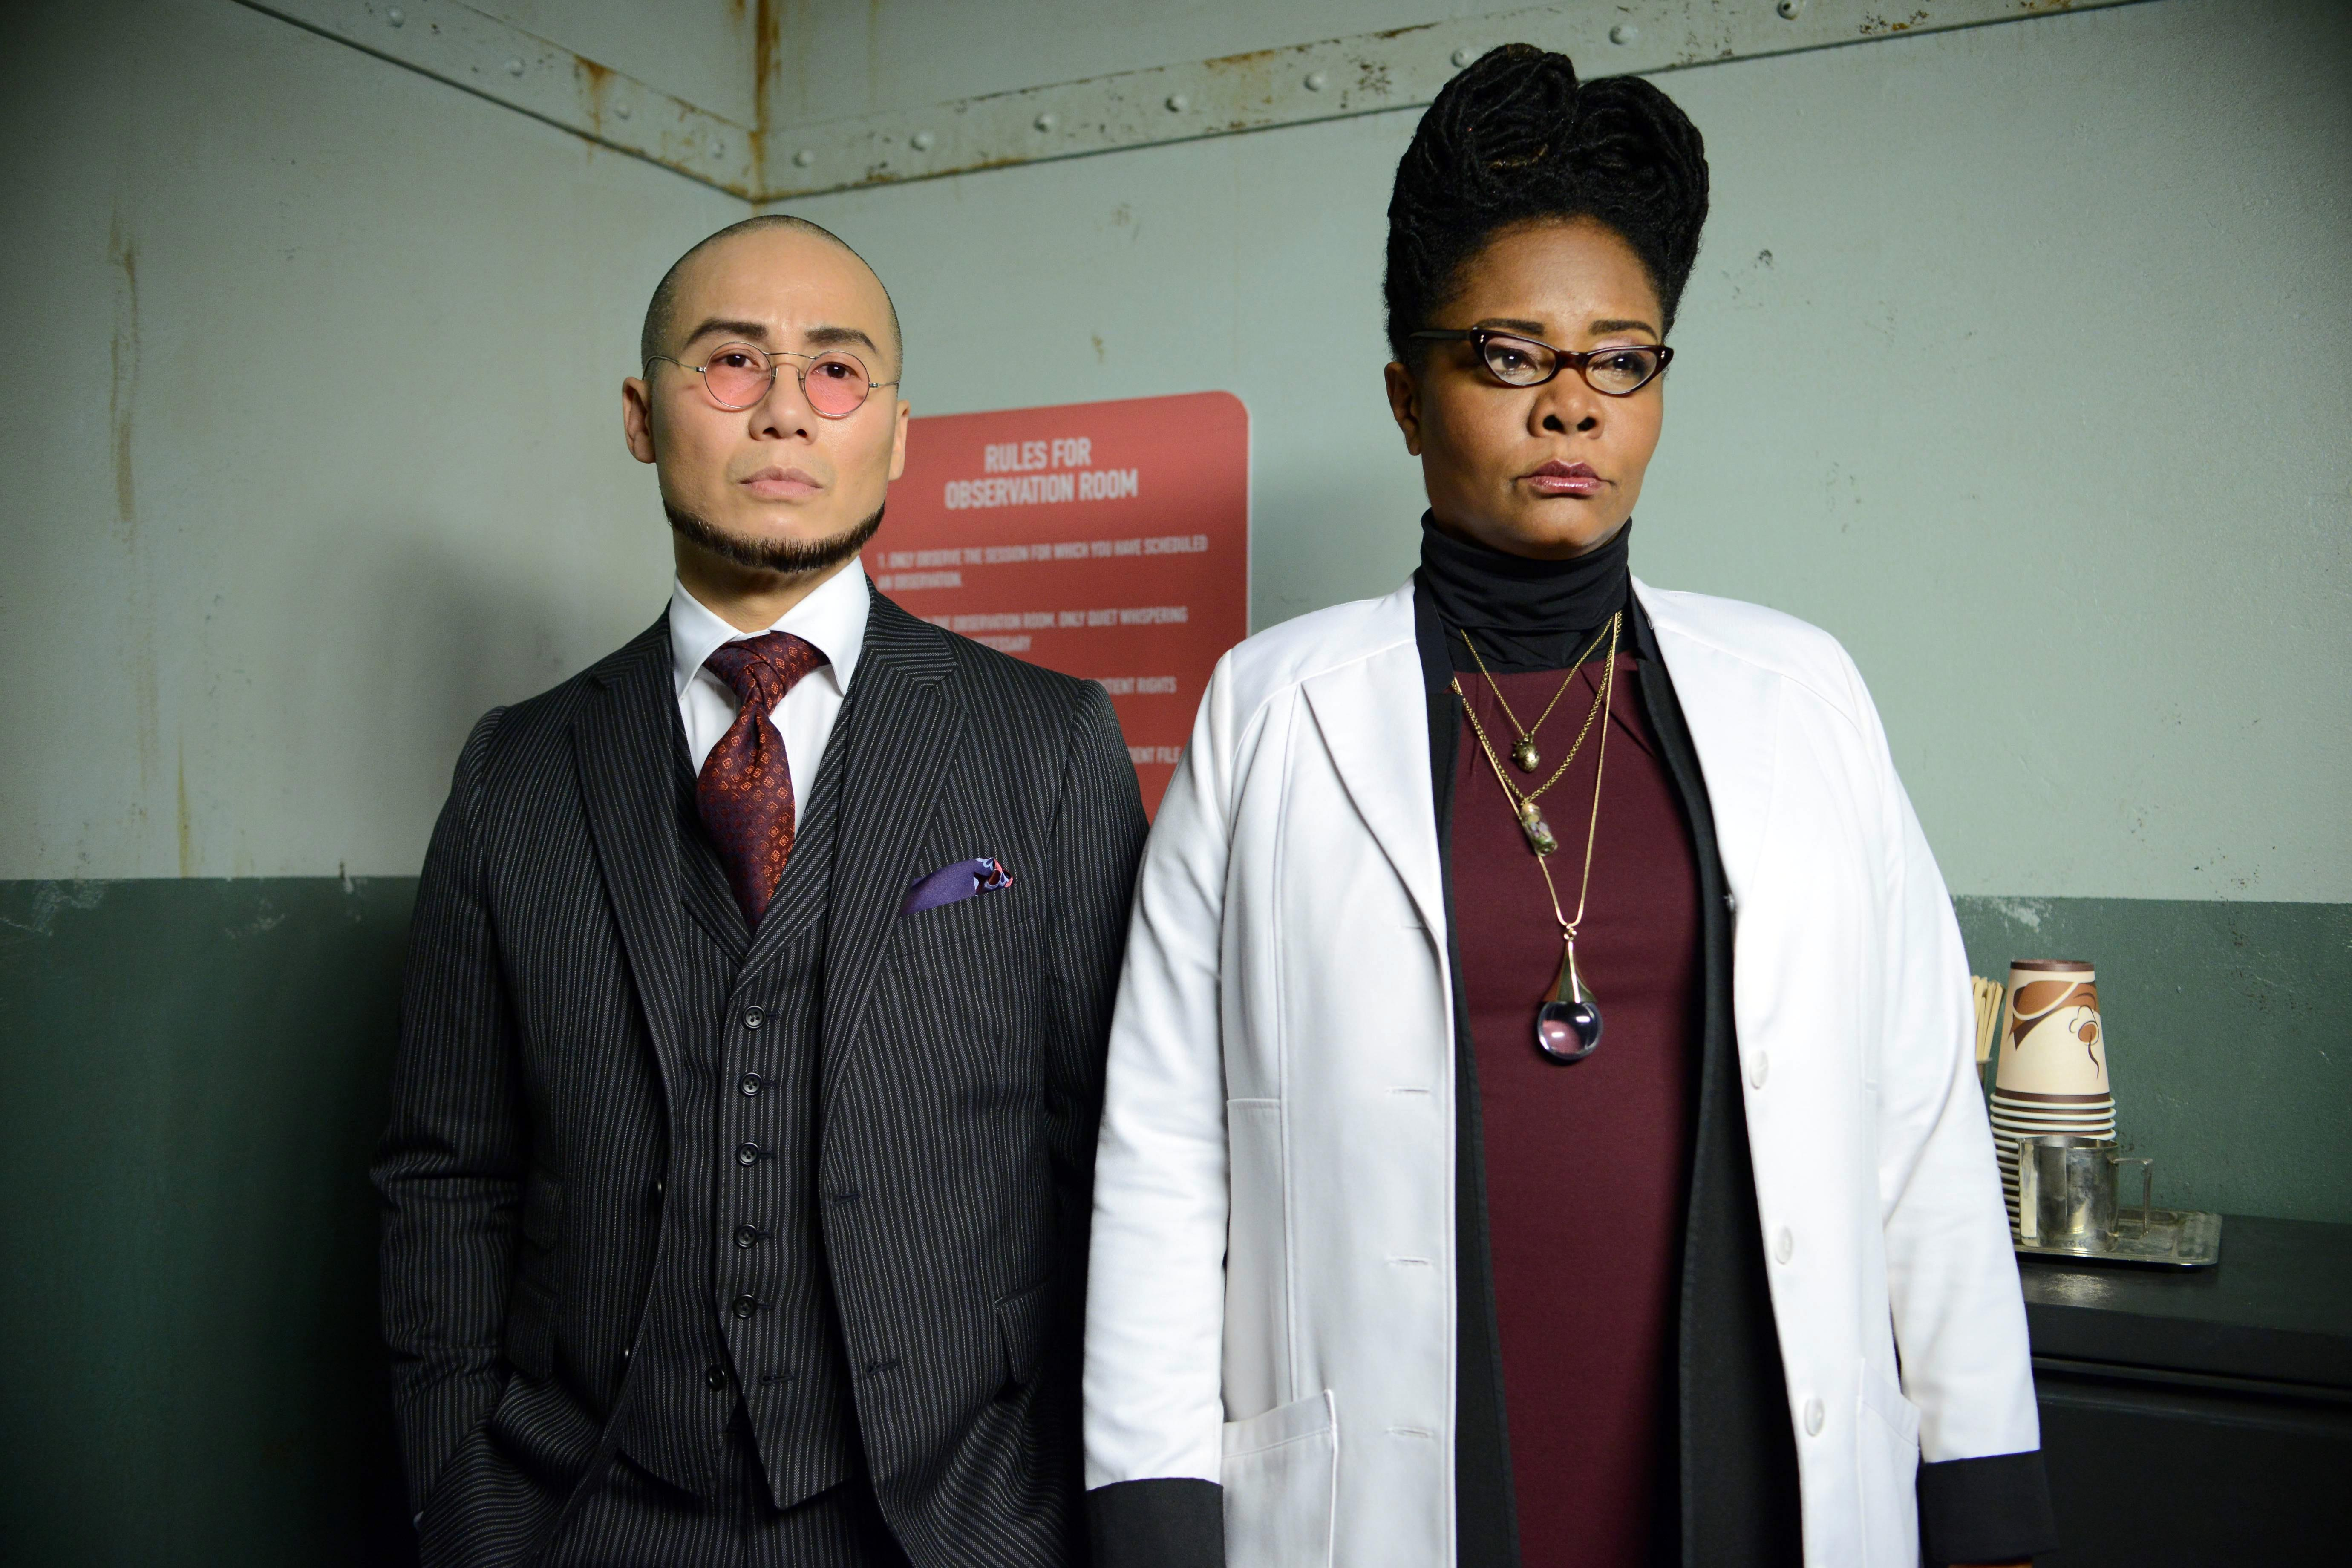 Hugo Strange and Ms. Peabody